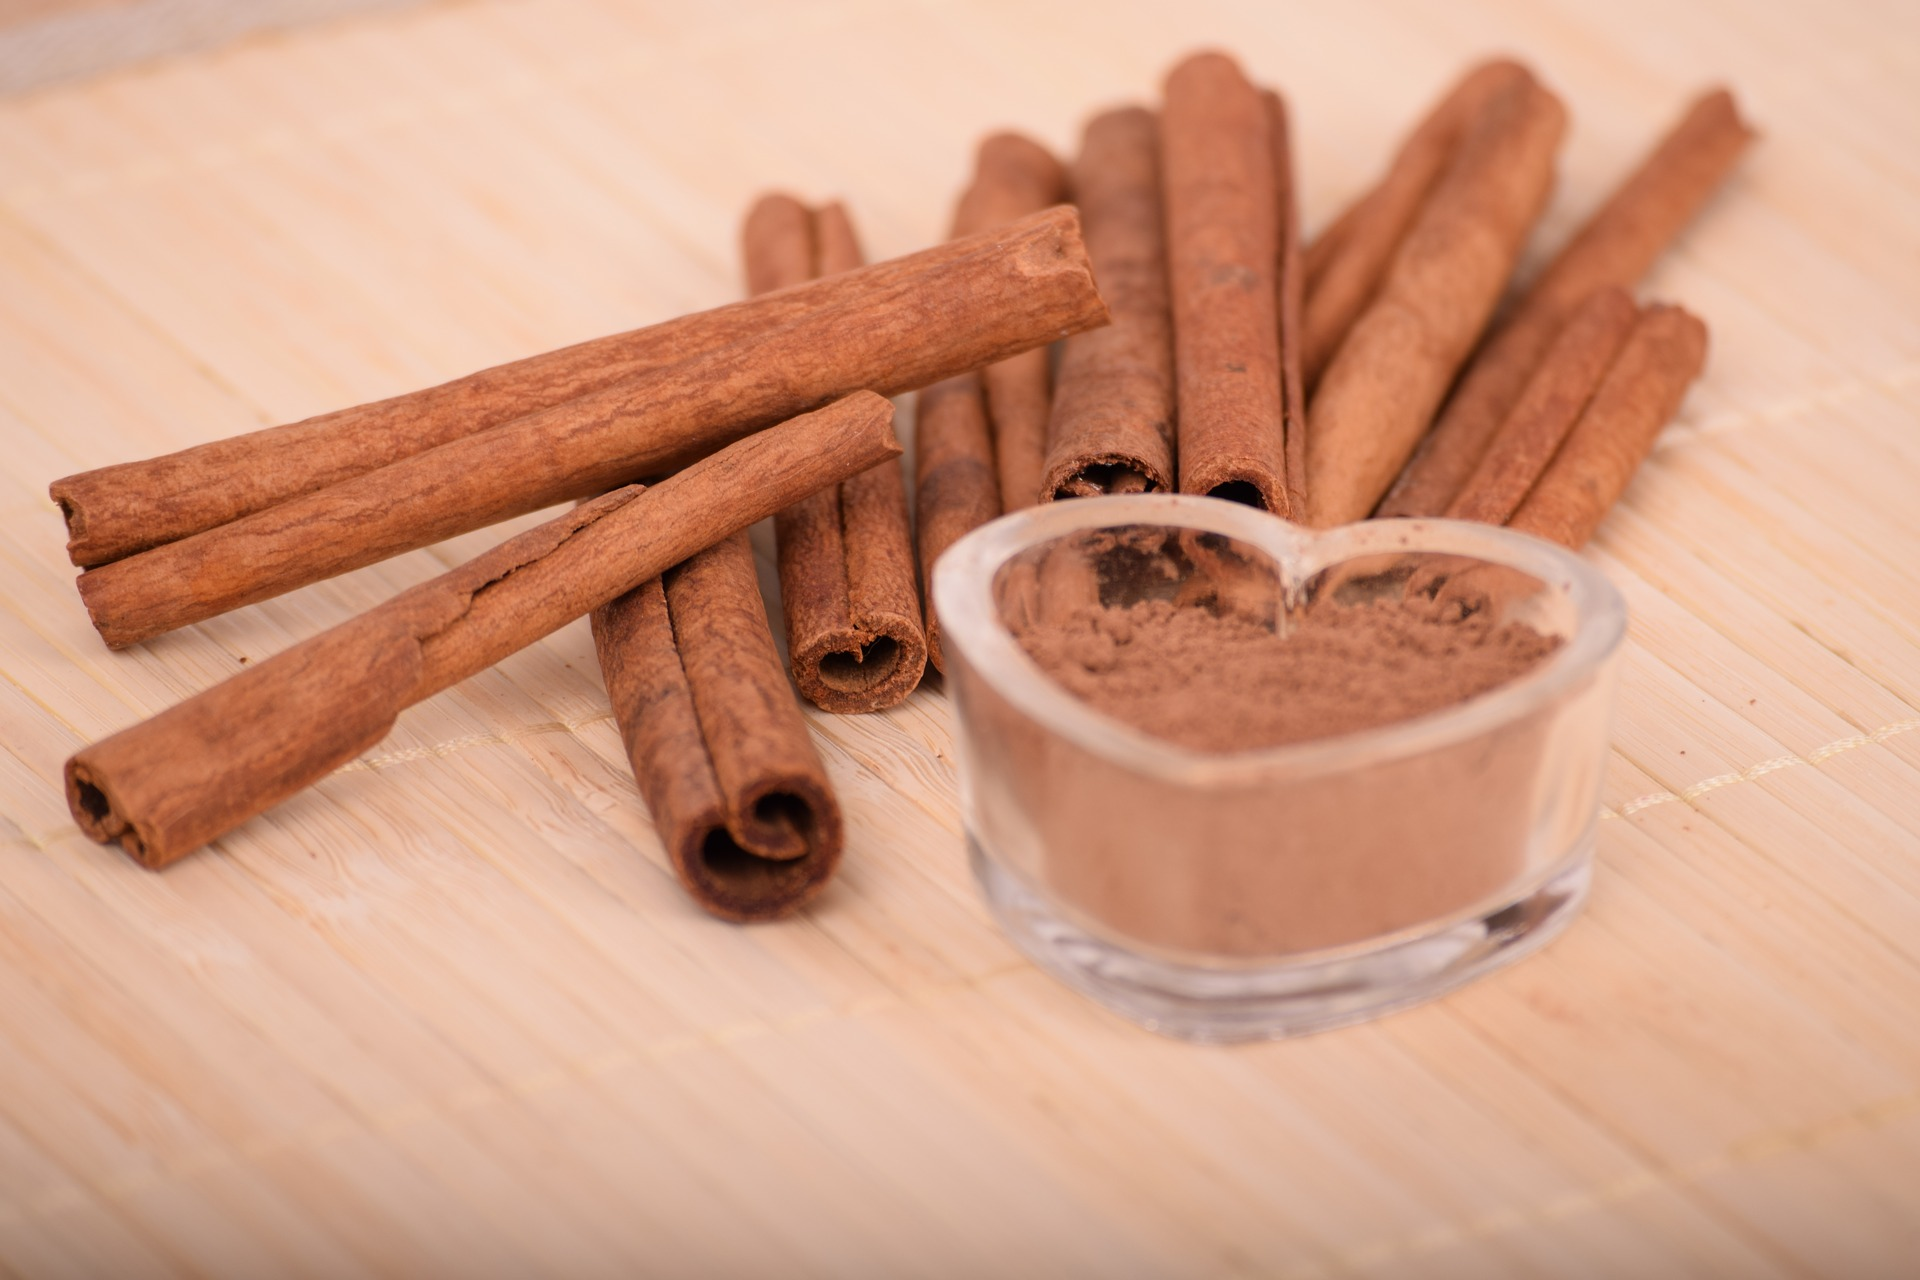 Cinnamon rids your home of ants.